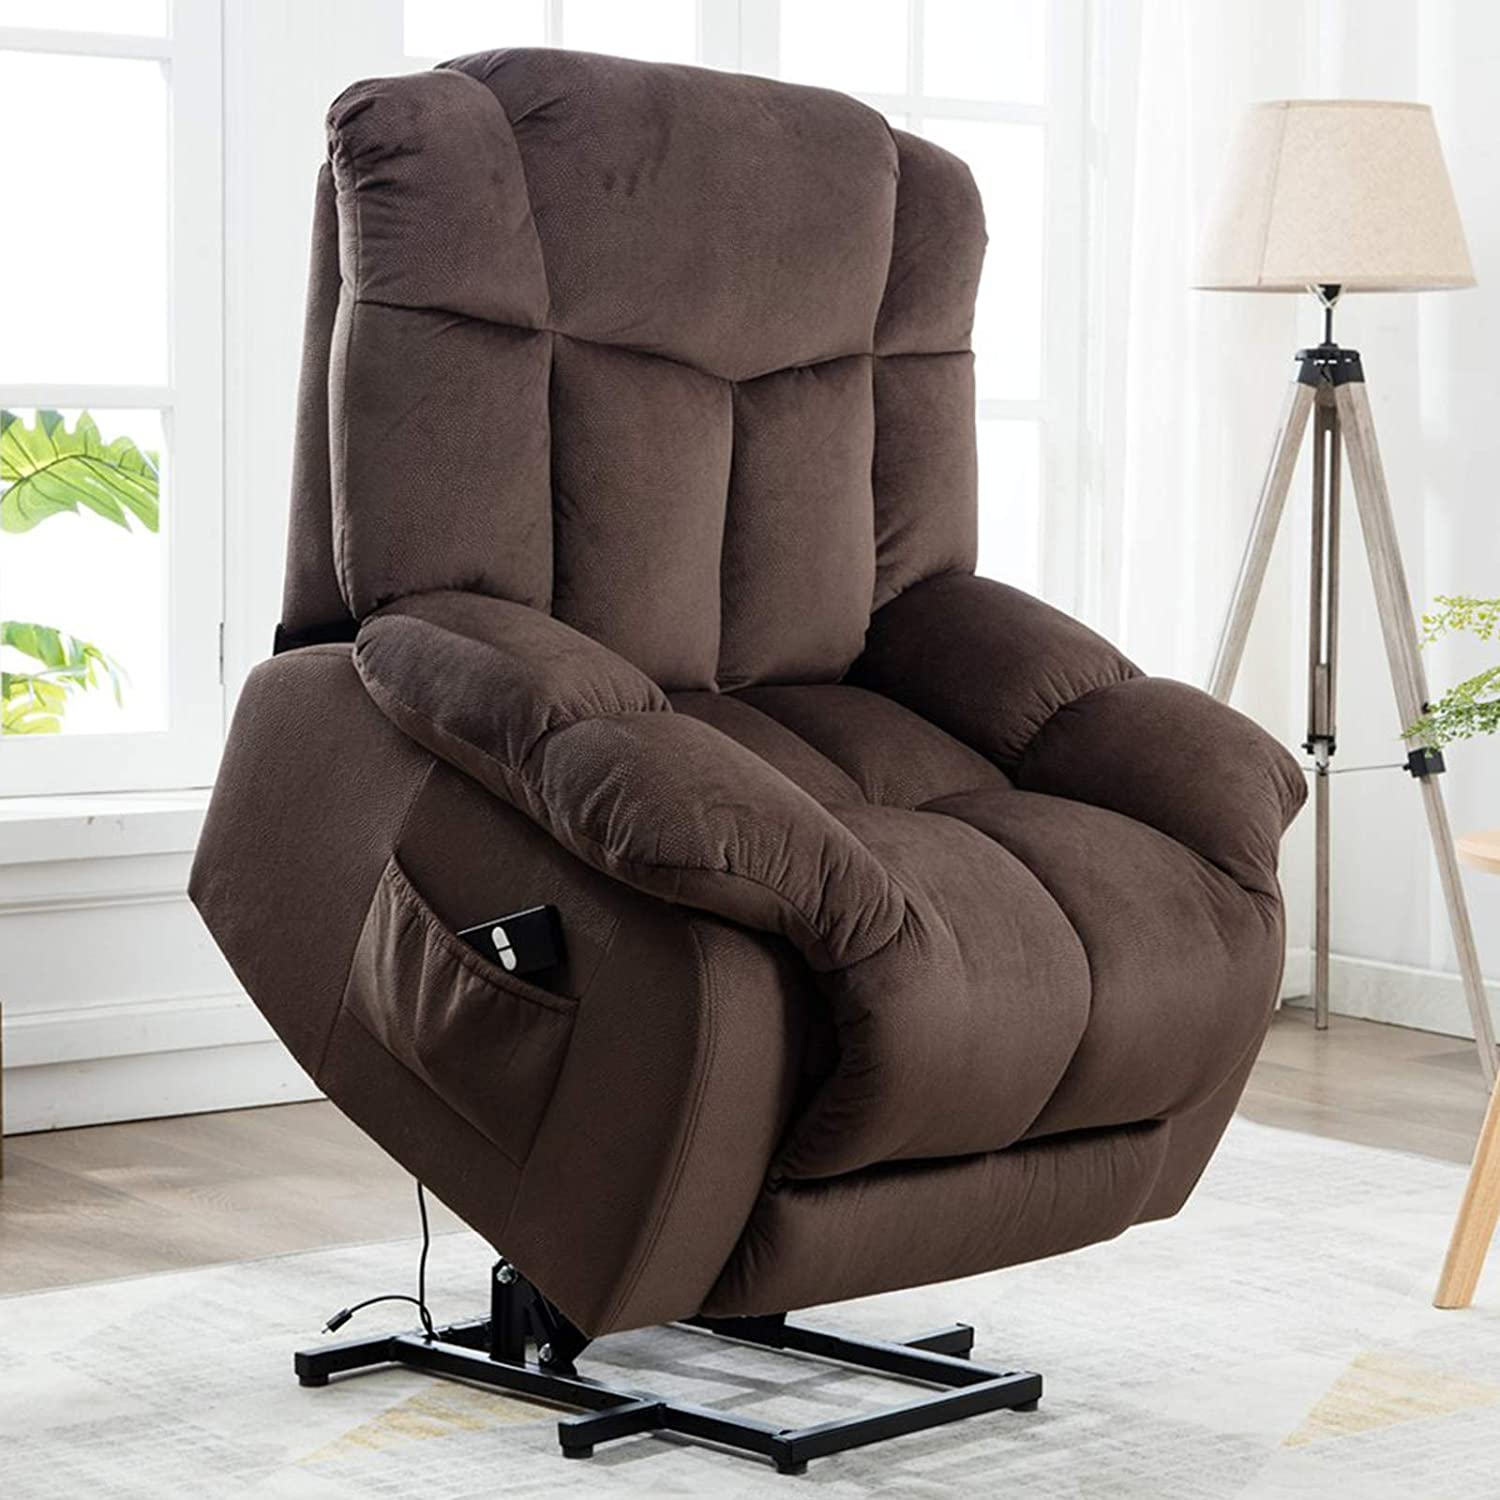 Canmov Power Lift Recliner Chair Heavy Duty and Safety Motion Reclining Mechanism Antiskid Fabric sofa Living Room Chair with Overstuffed design,